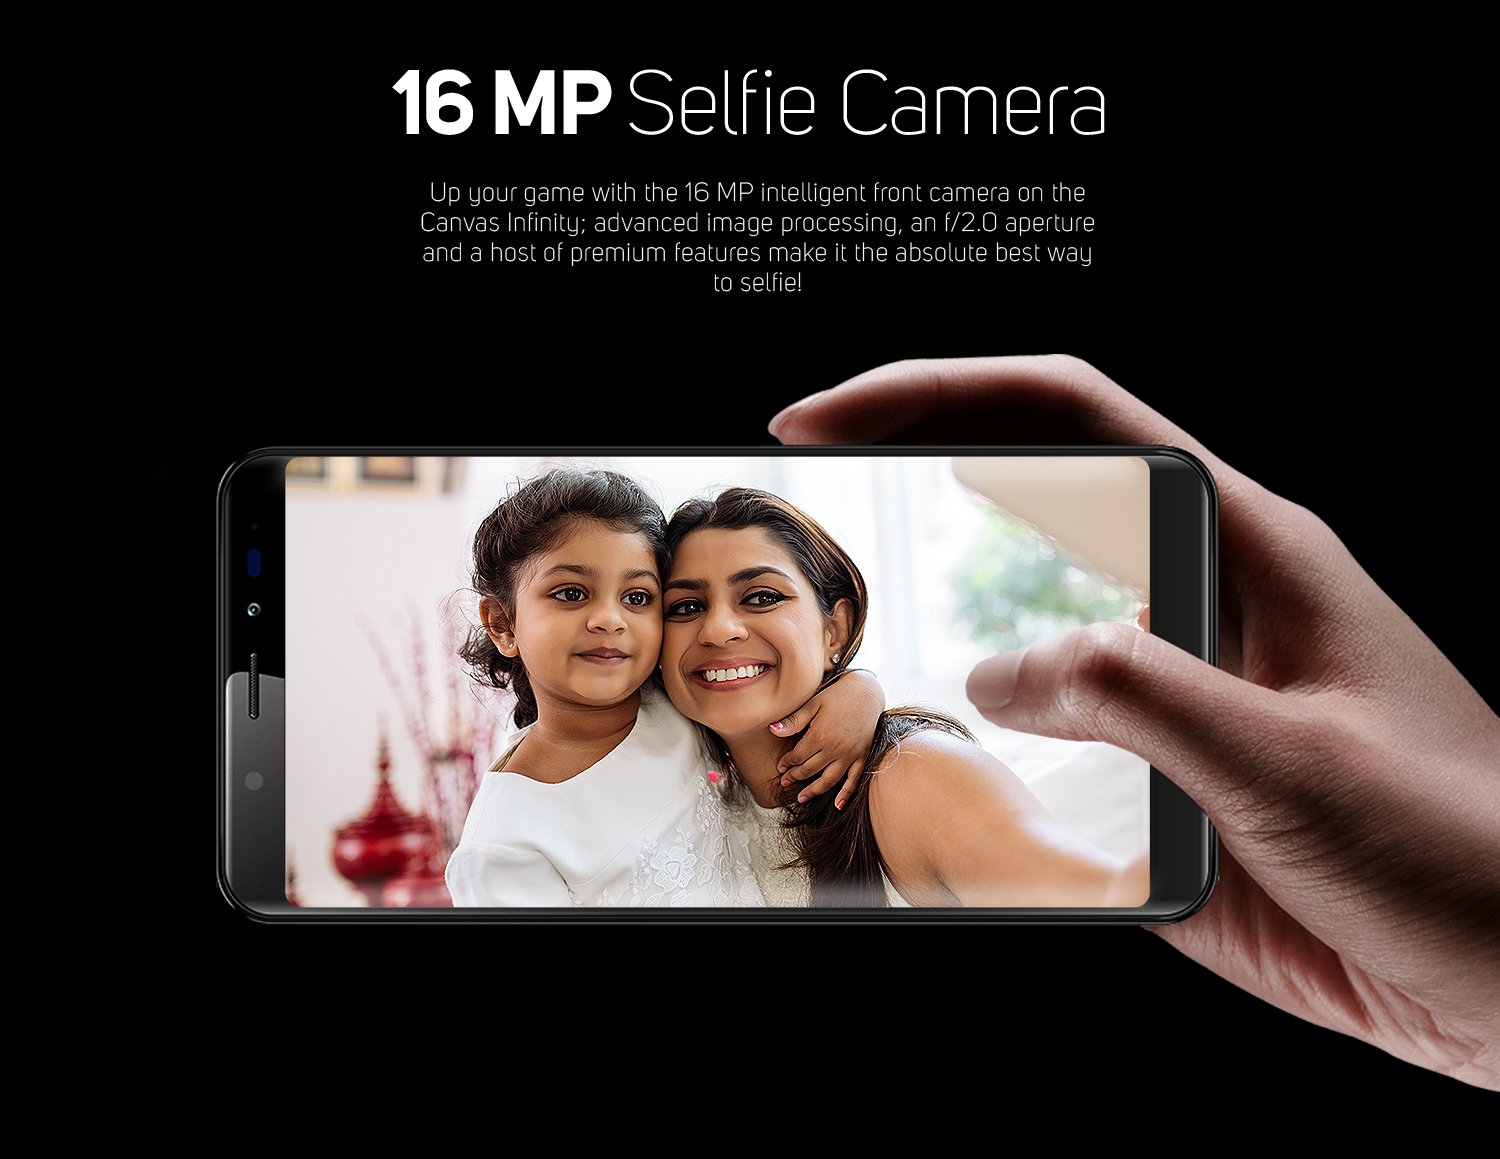 16mp selfie camera